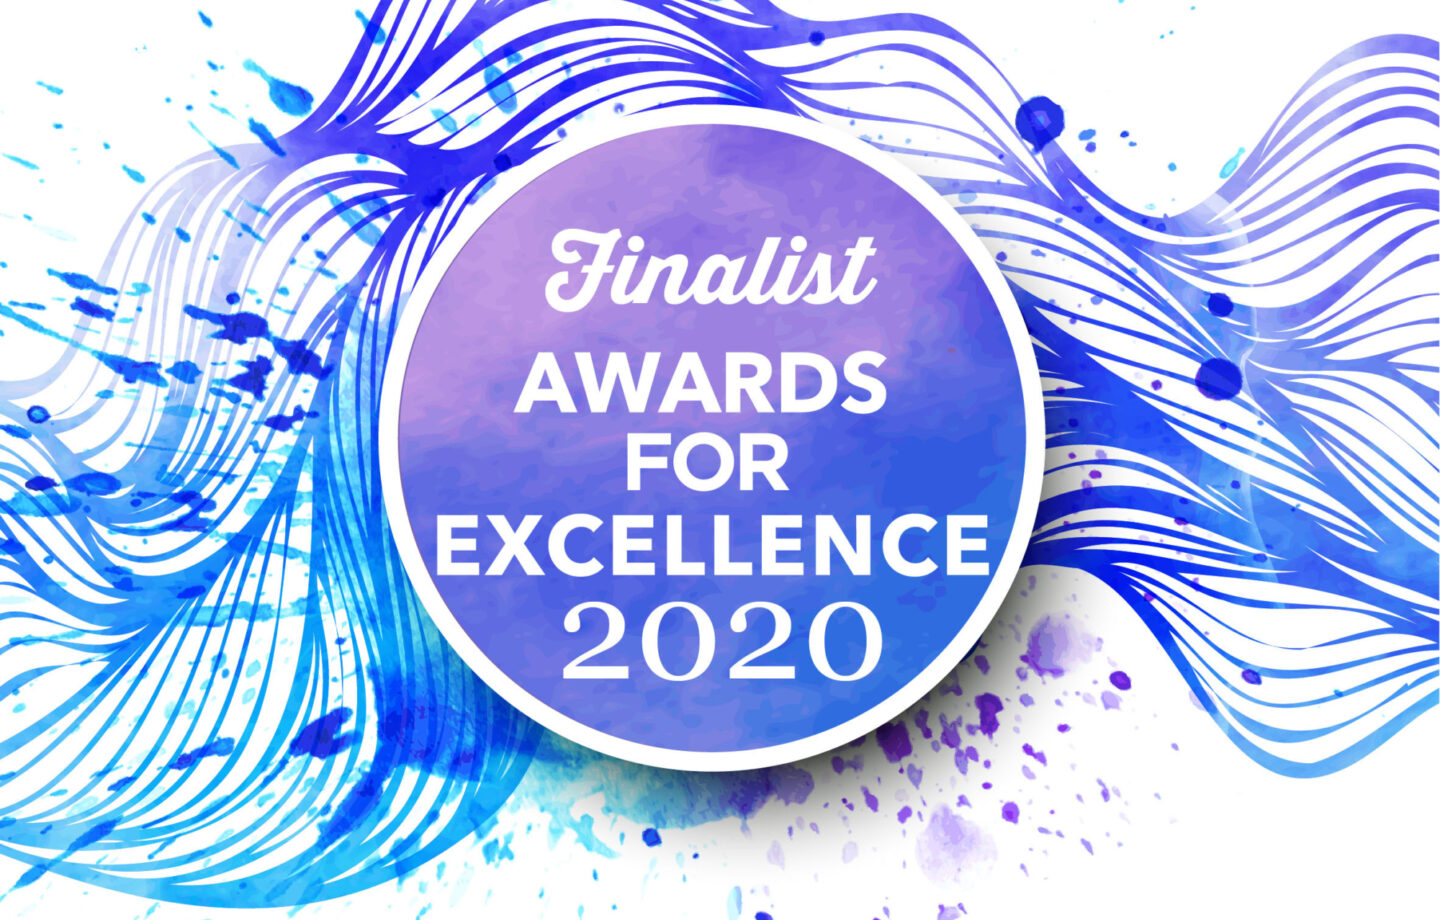 2020 AWARDS FOR EXCELLENCE